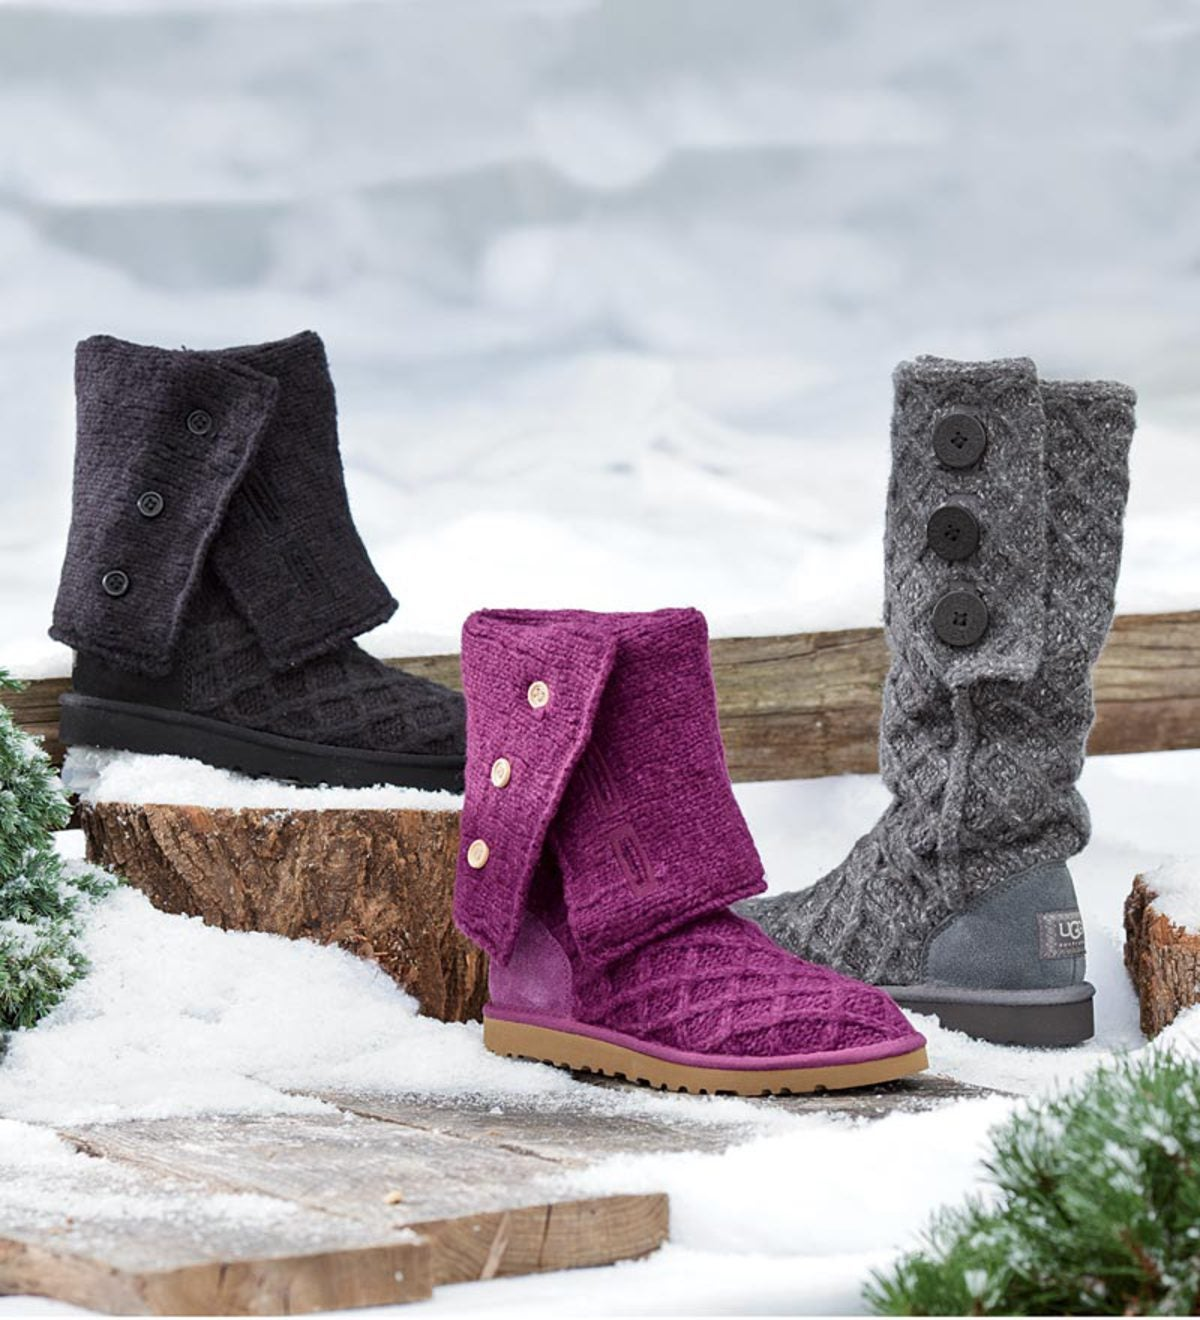 4da9d89b802 free shipping ugg lattice cardy boots sale ec59c 4a80a